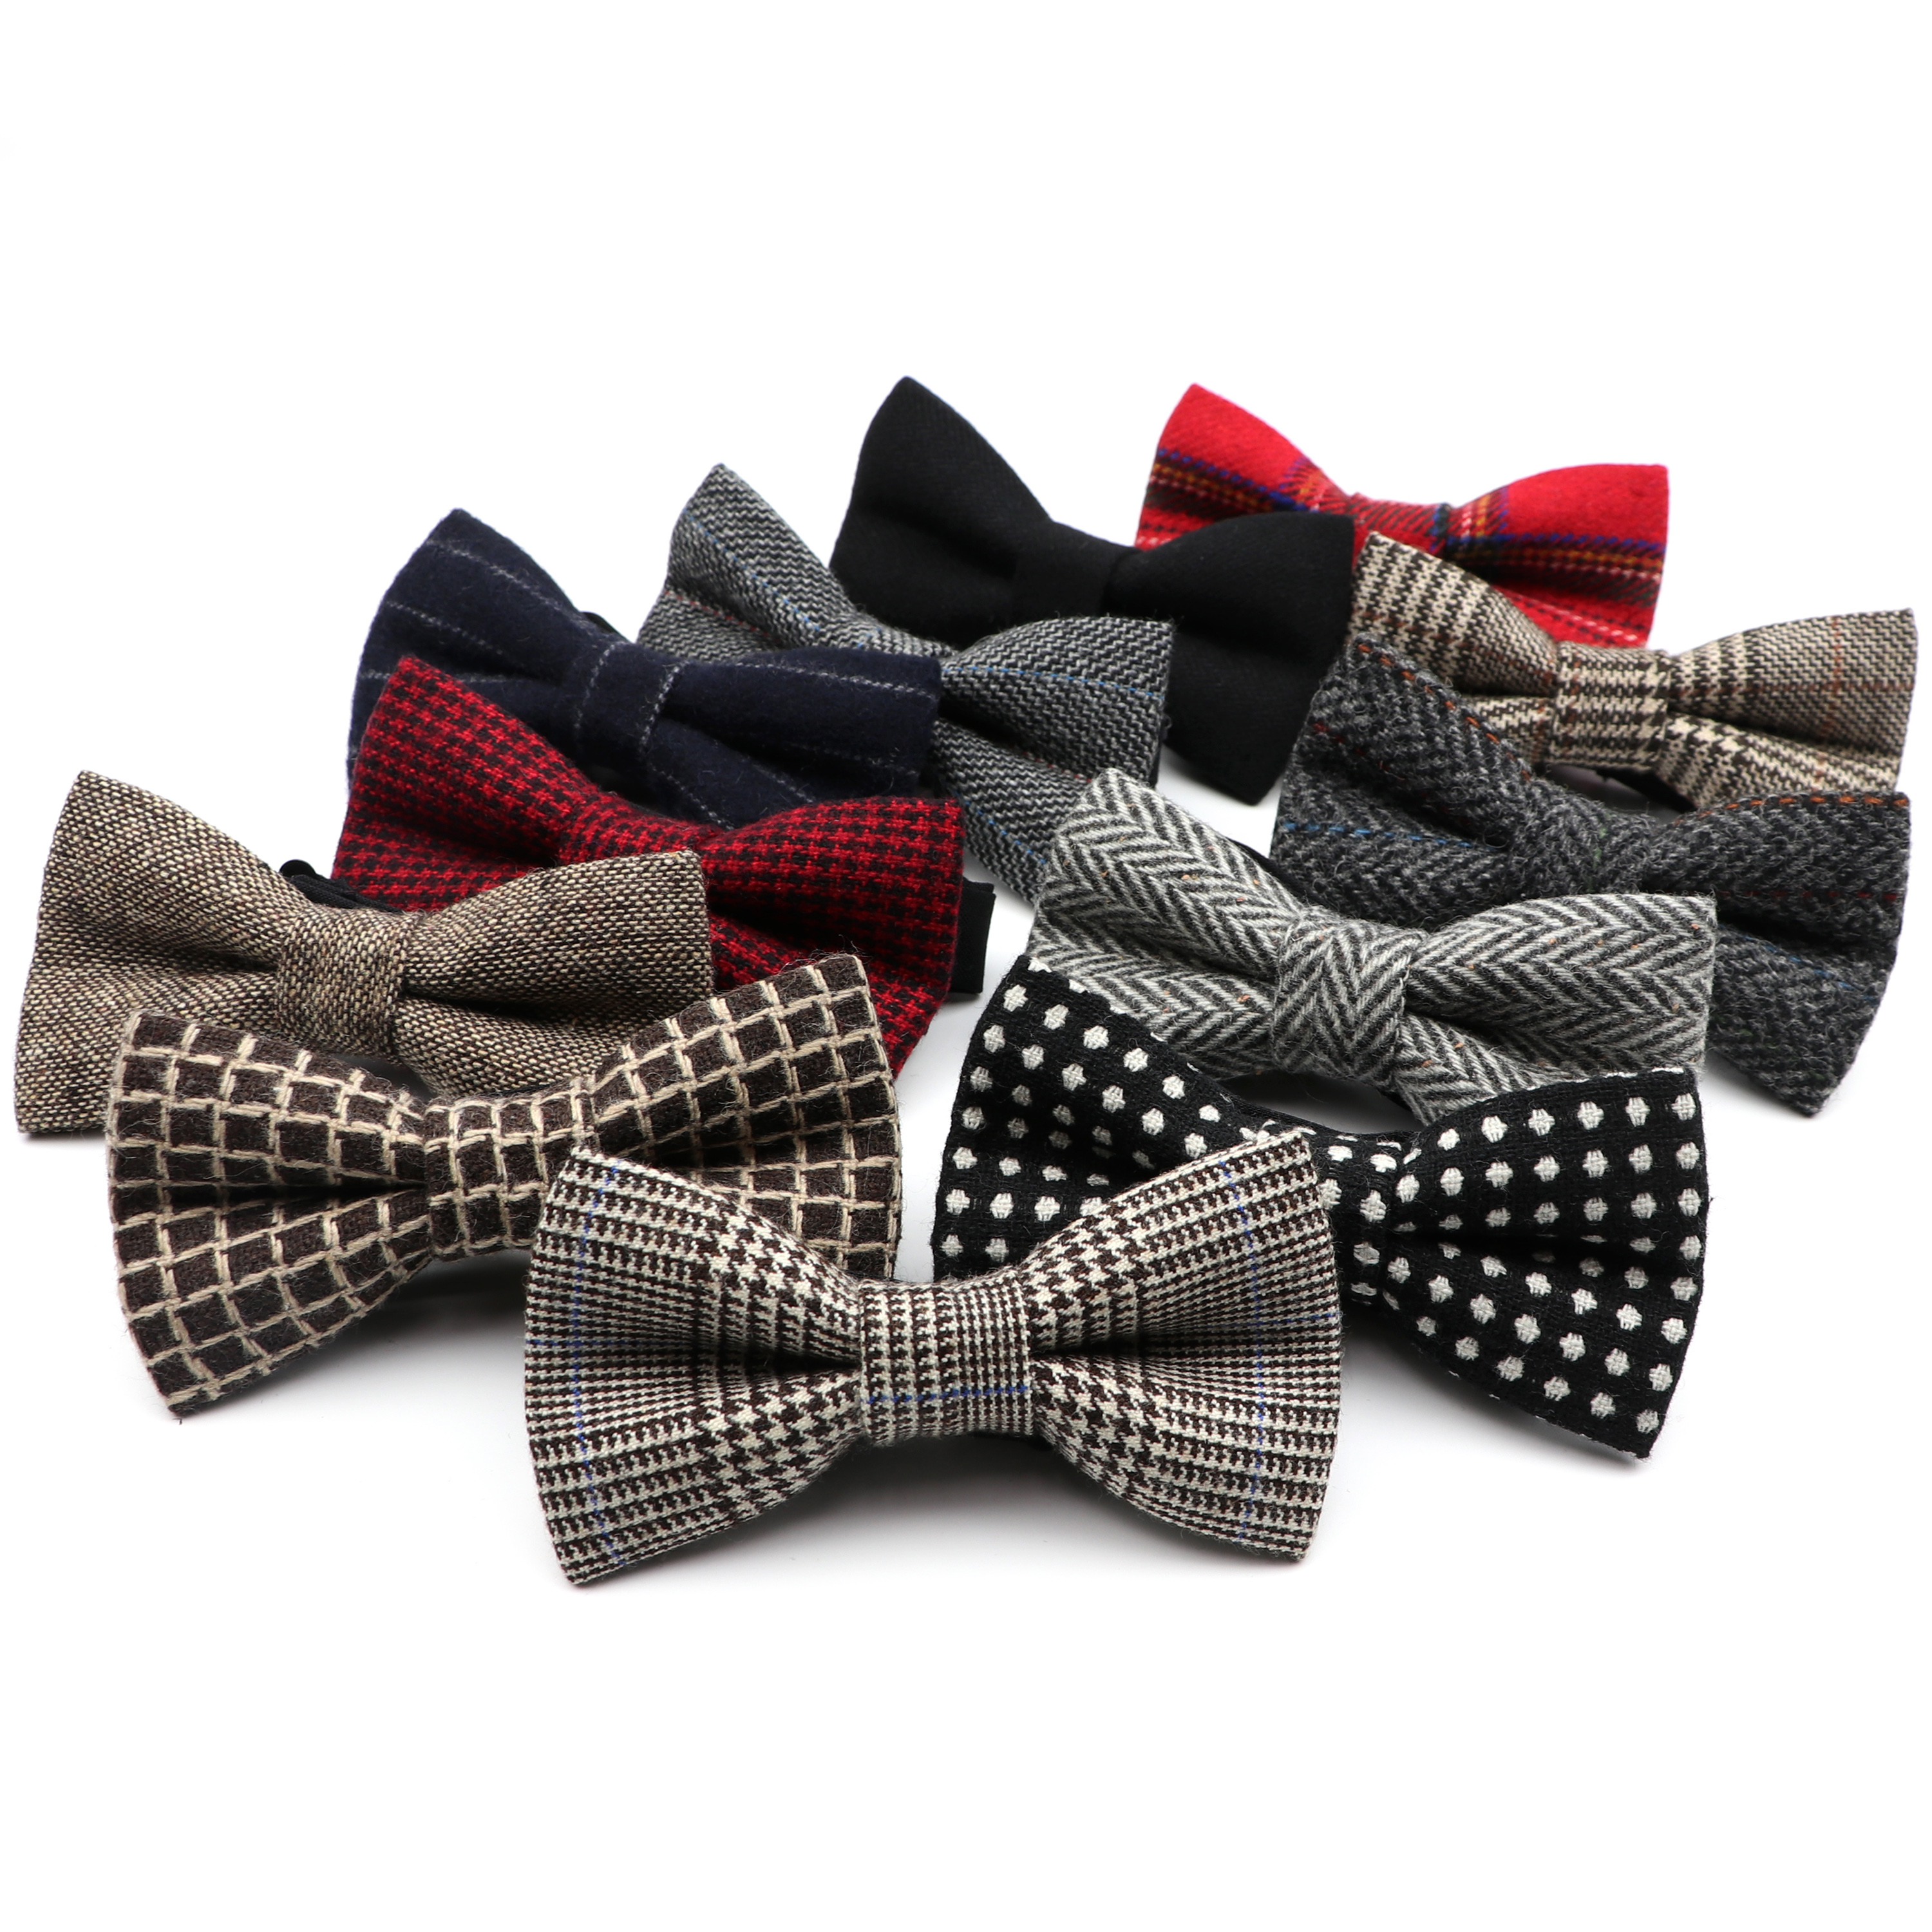 Men's 100% Wool Bow Tie Superior Classical Gravata Houndstooth  England  For Men Wedding Formal Business Butterfly Bowtie Gift